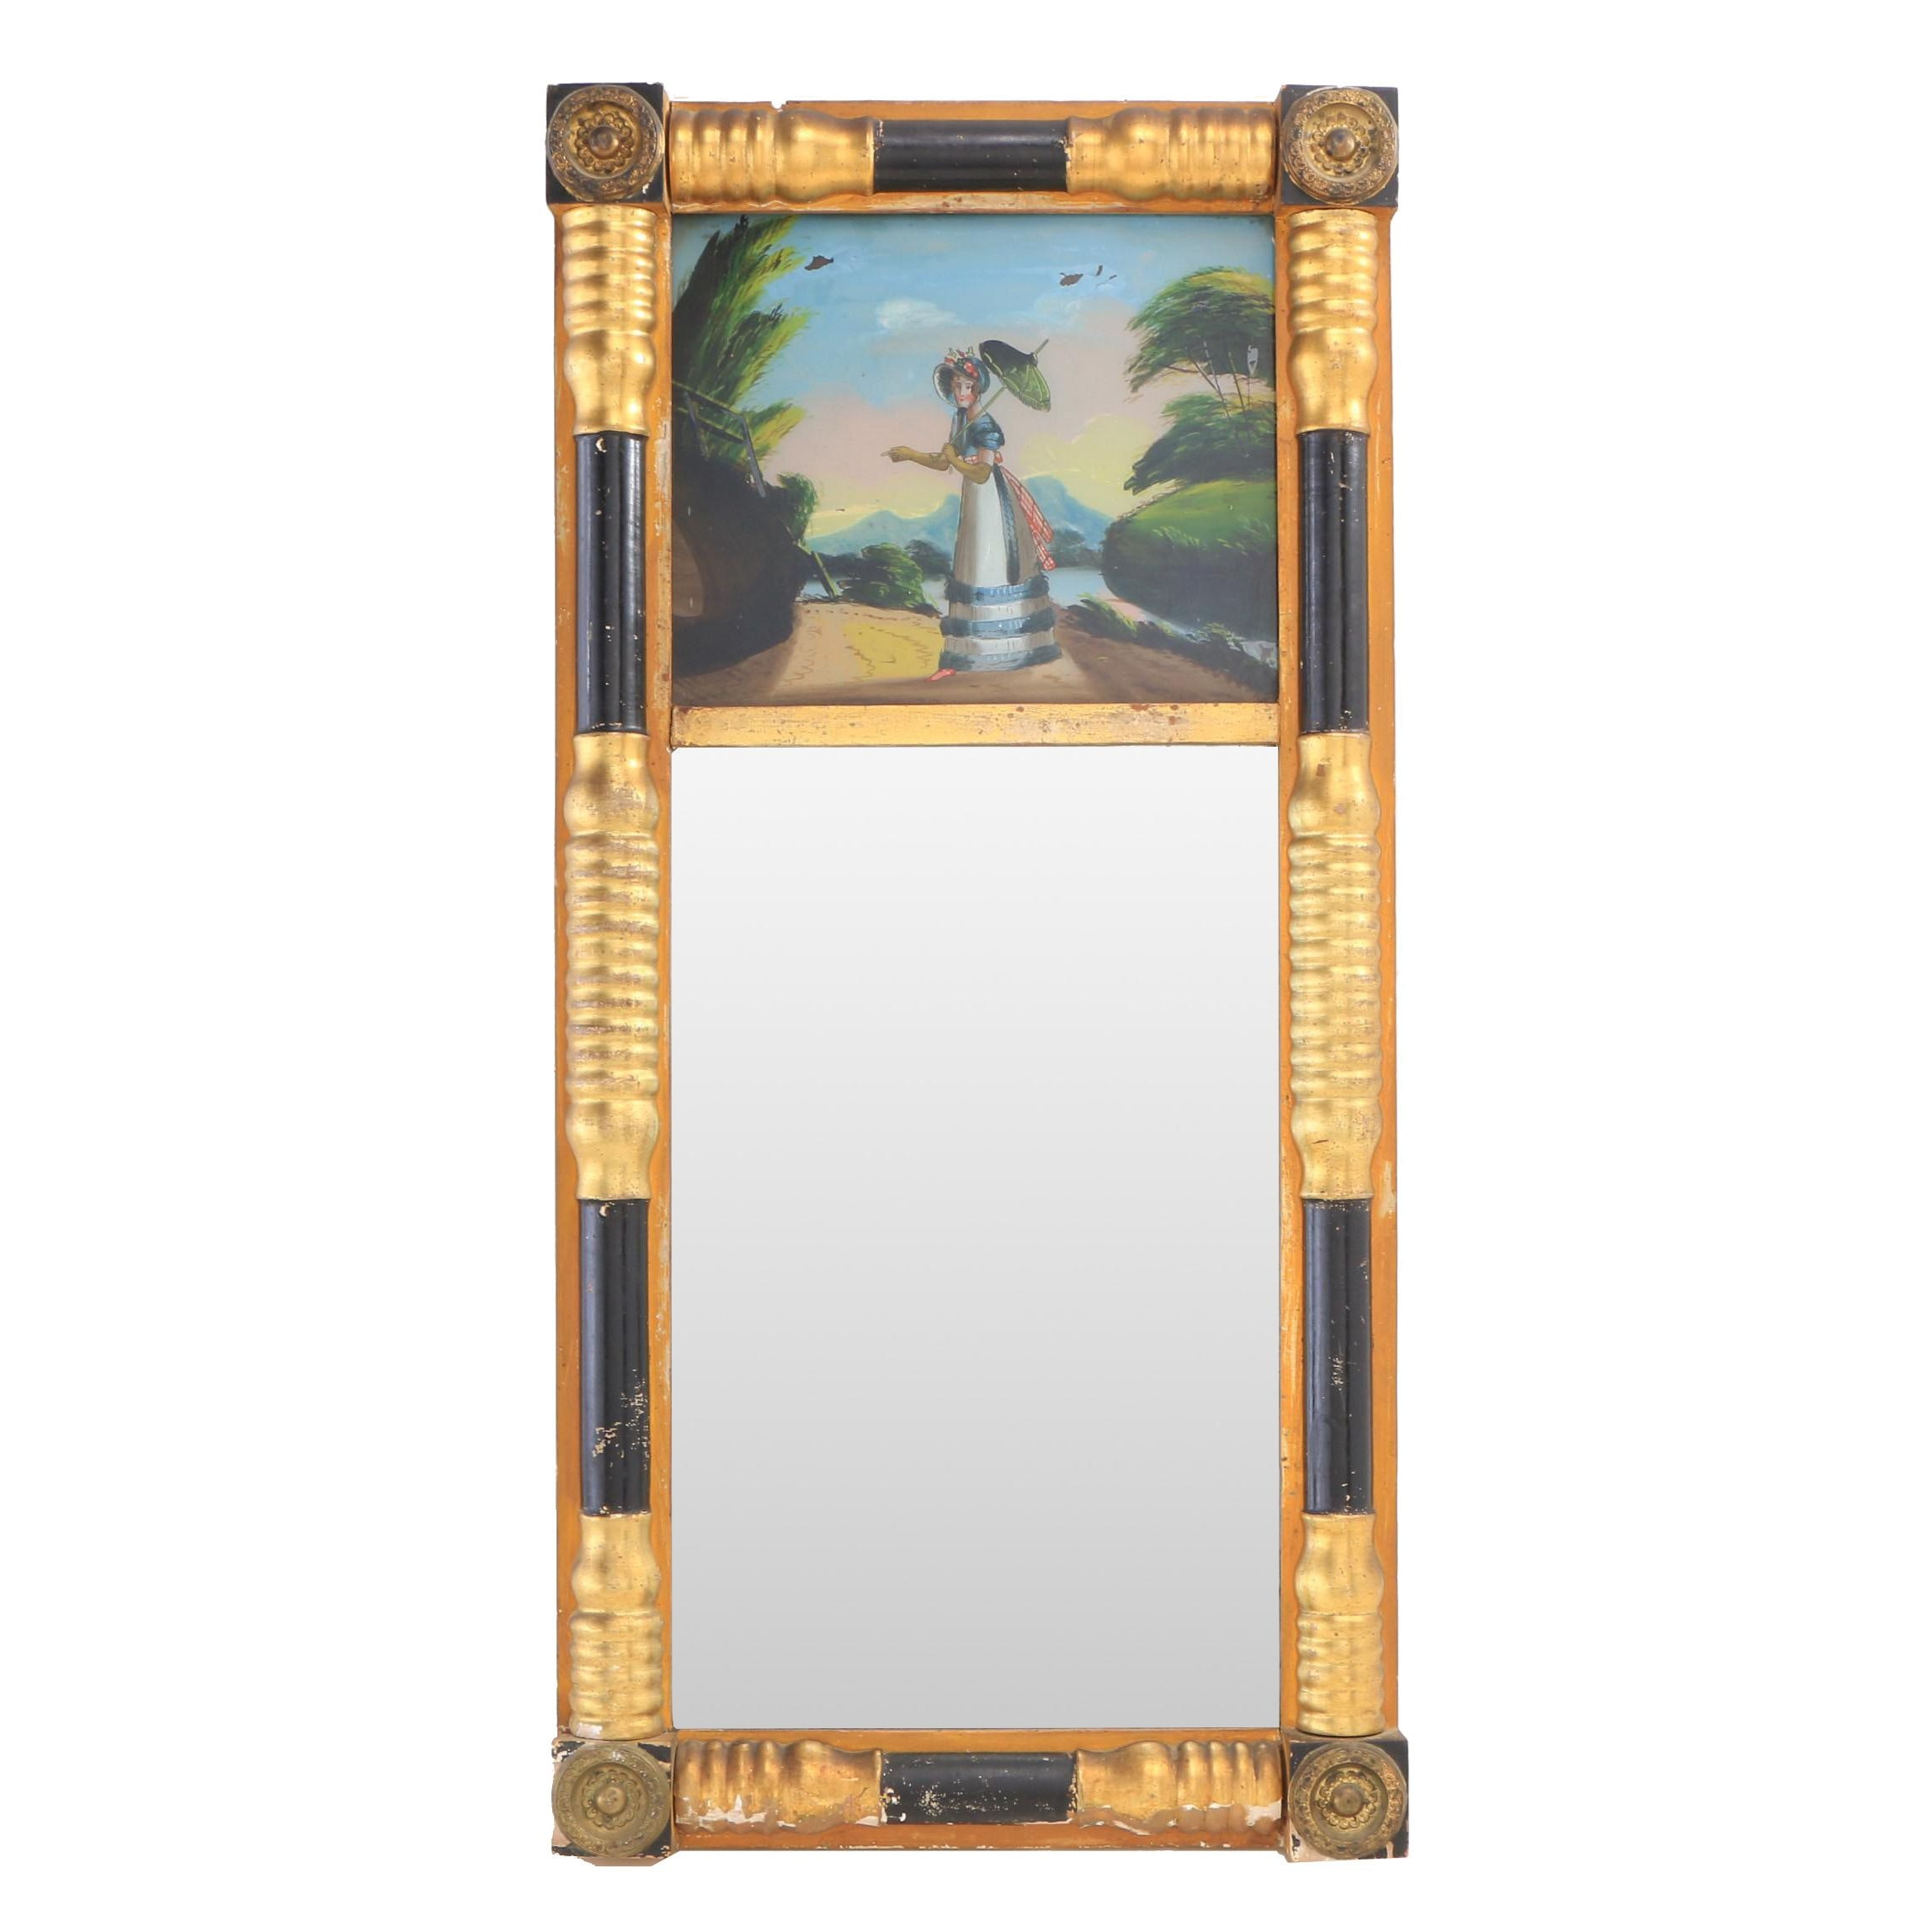 Empire Style Trumeau Mirror with Reverse Painted Panel, Early 20th Century